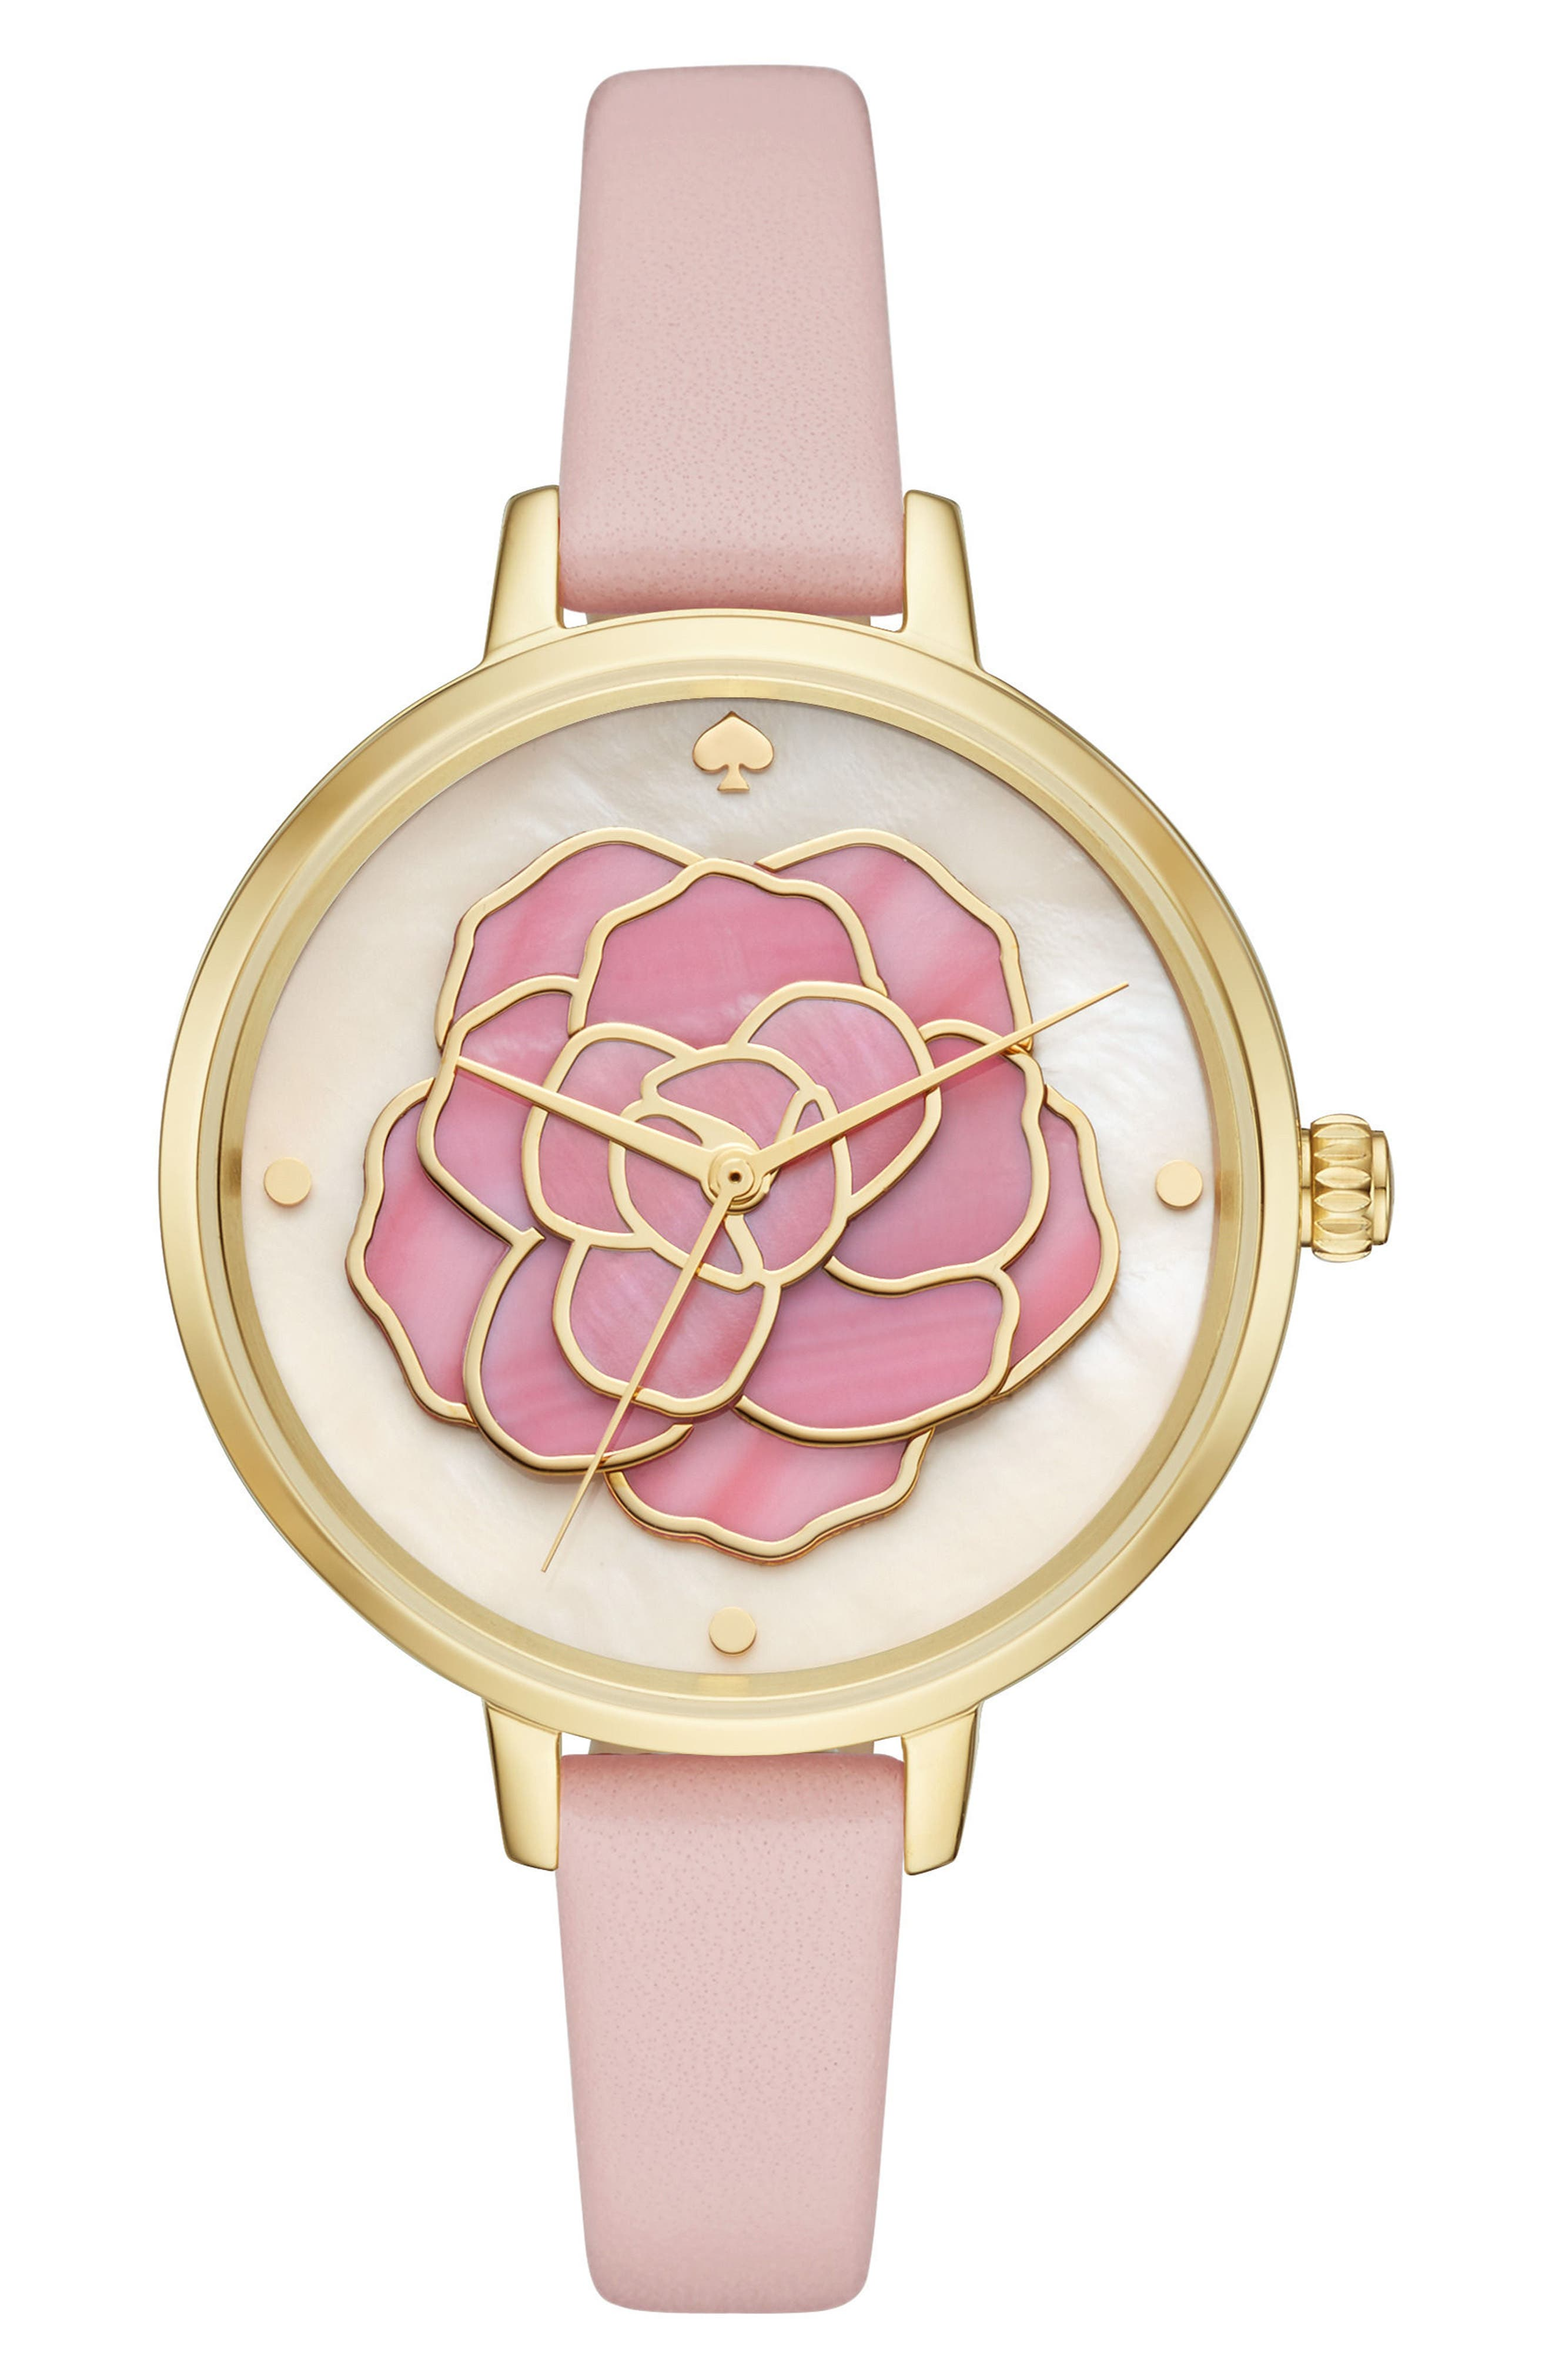 KATE SPADE NEW YORK rose leather strap watch, 34mm